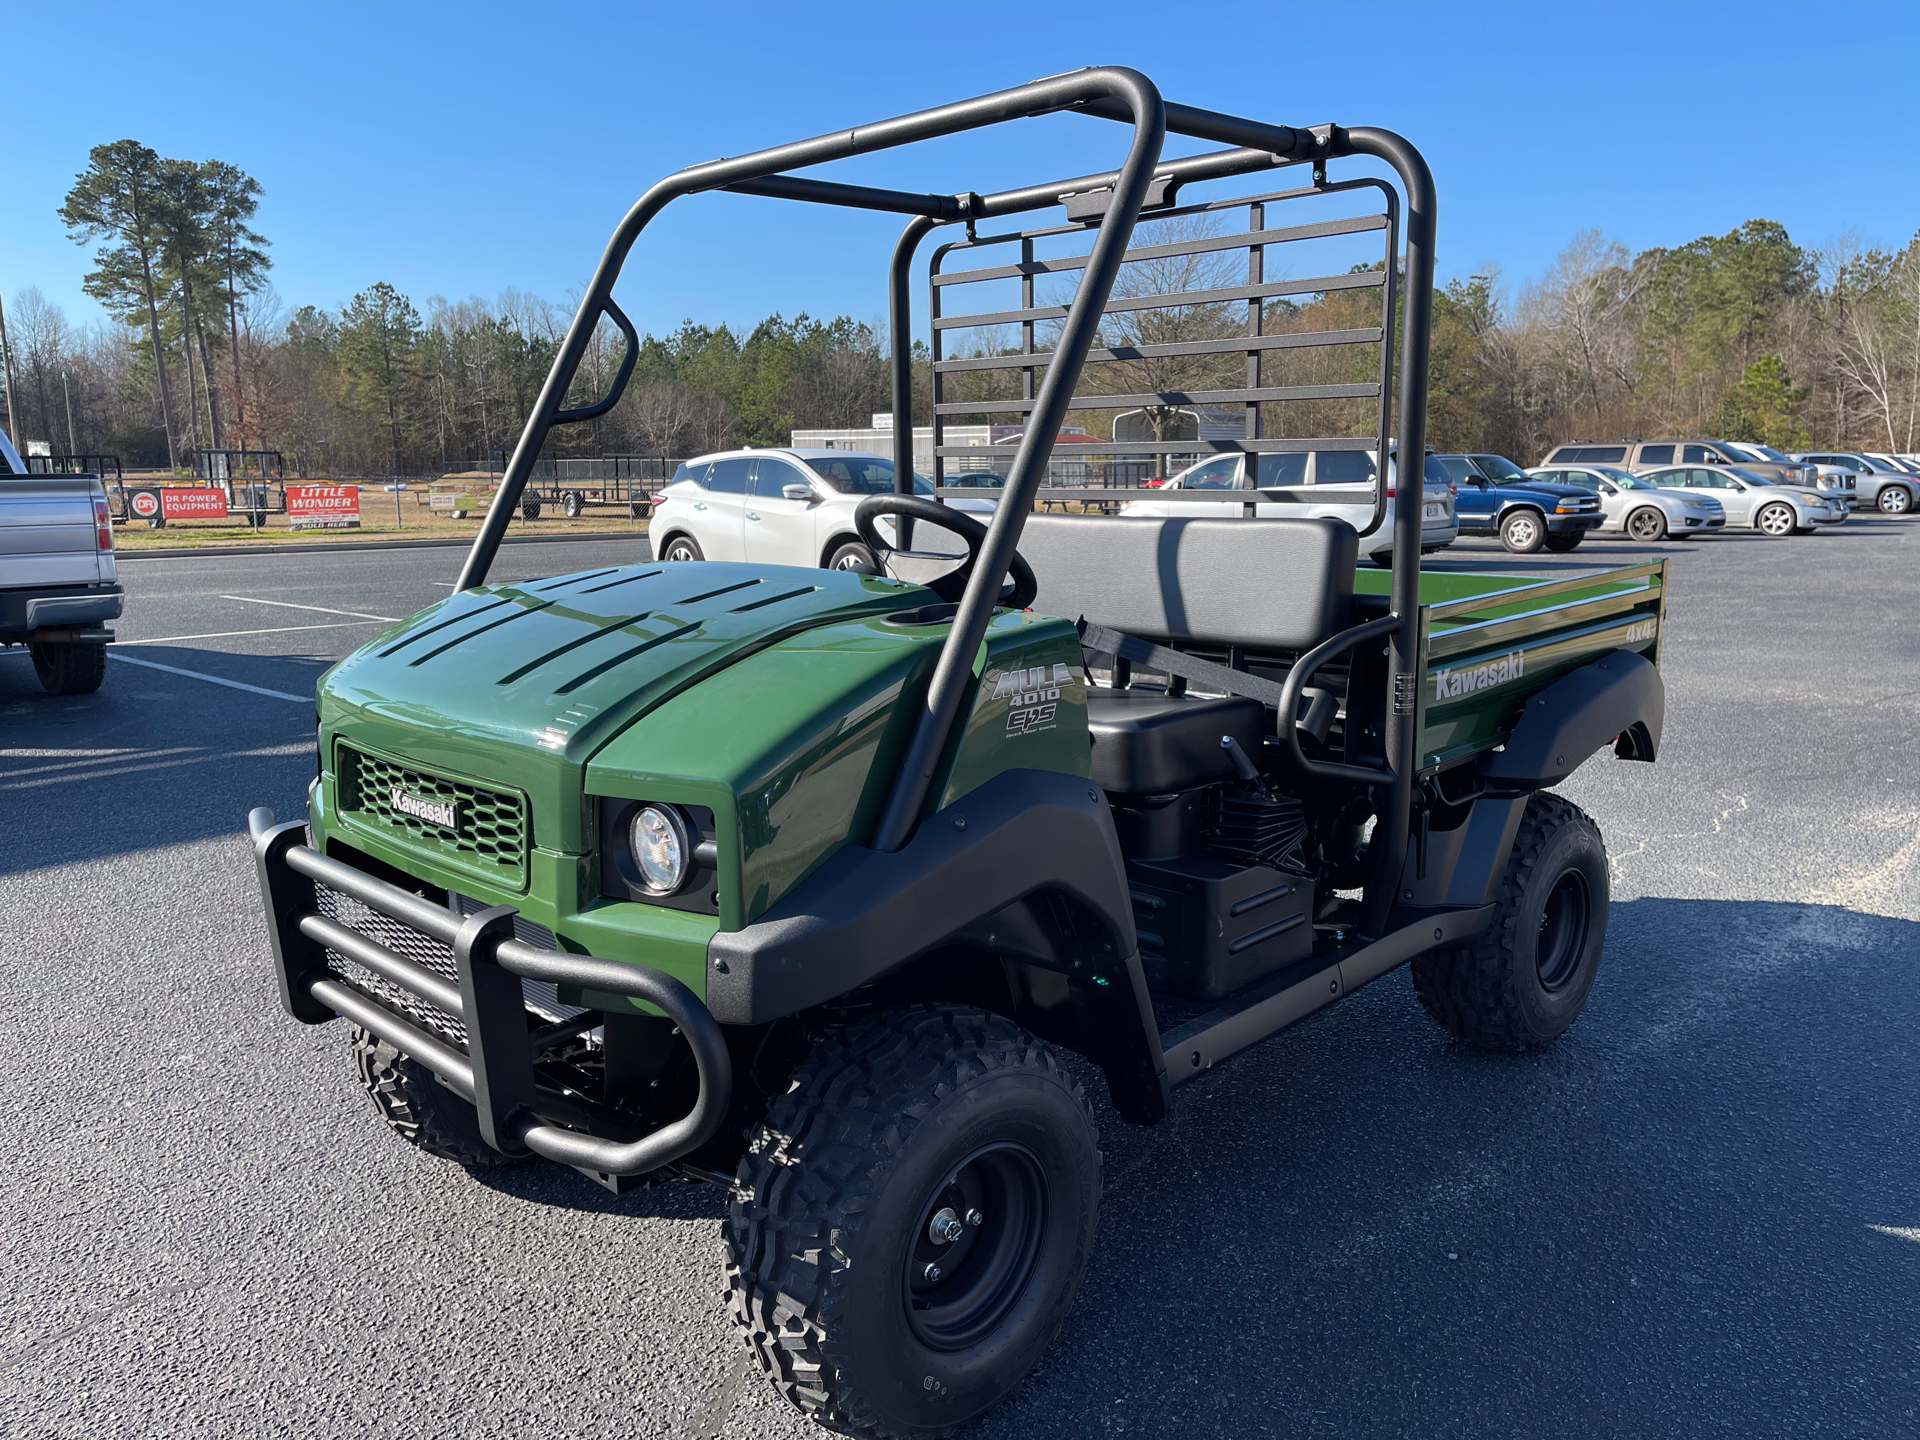 2021 Kawasaki Mule 4010 4x4 in Greenville, North Carolina - Photo 4